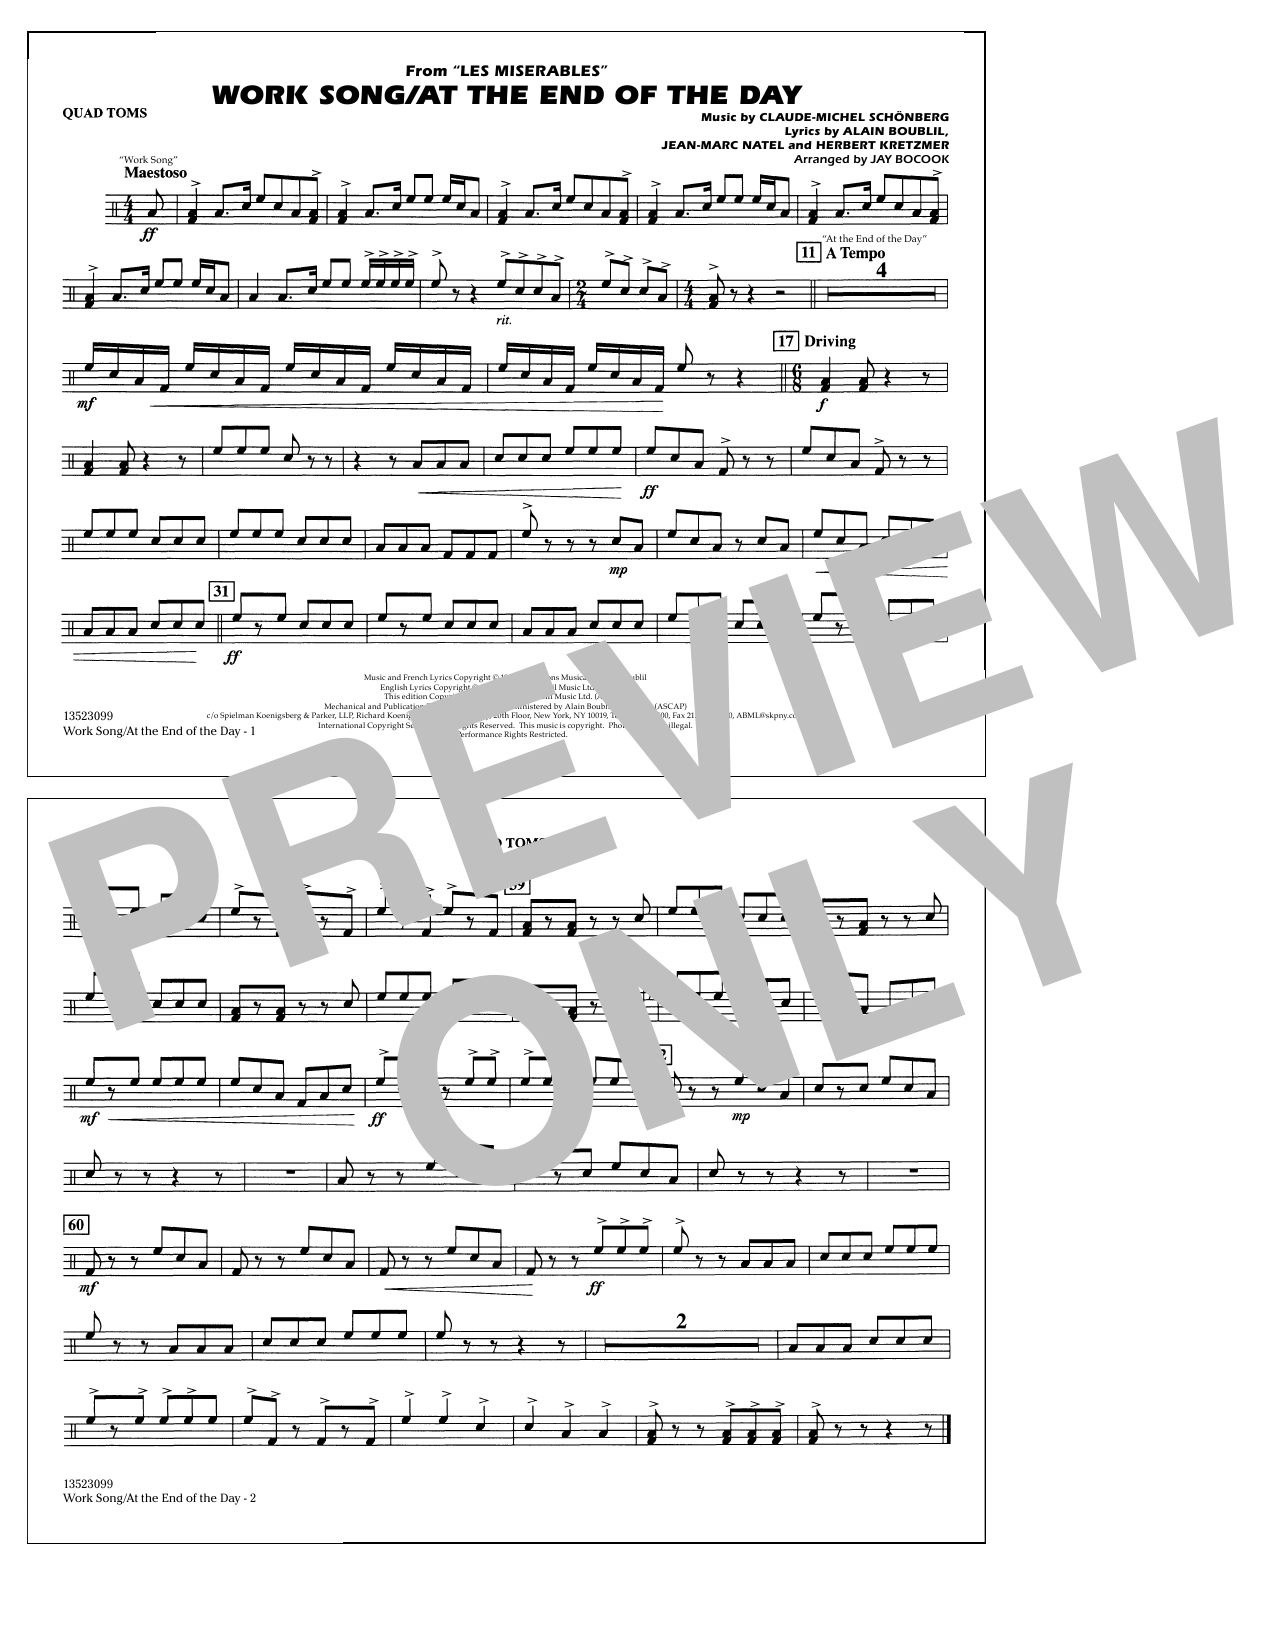 Work Song/At the End of the Day (Les Misérables) (arr. Jay Bocook) - Quad Toms (Marching Band)